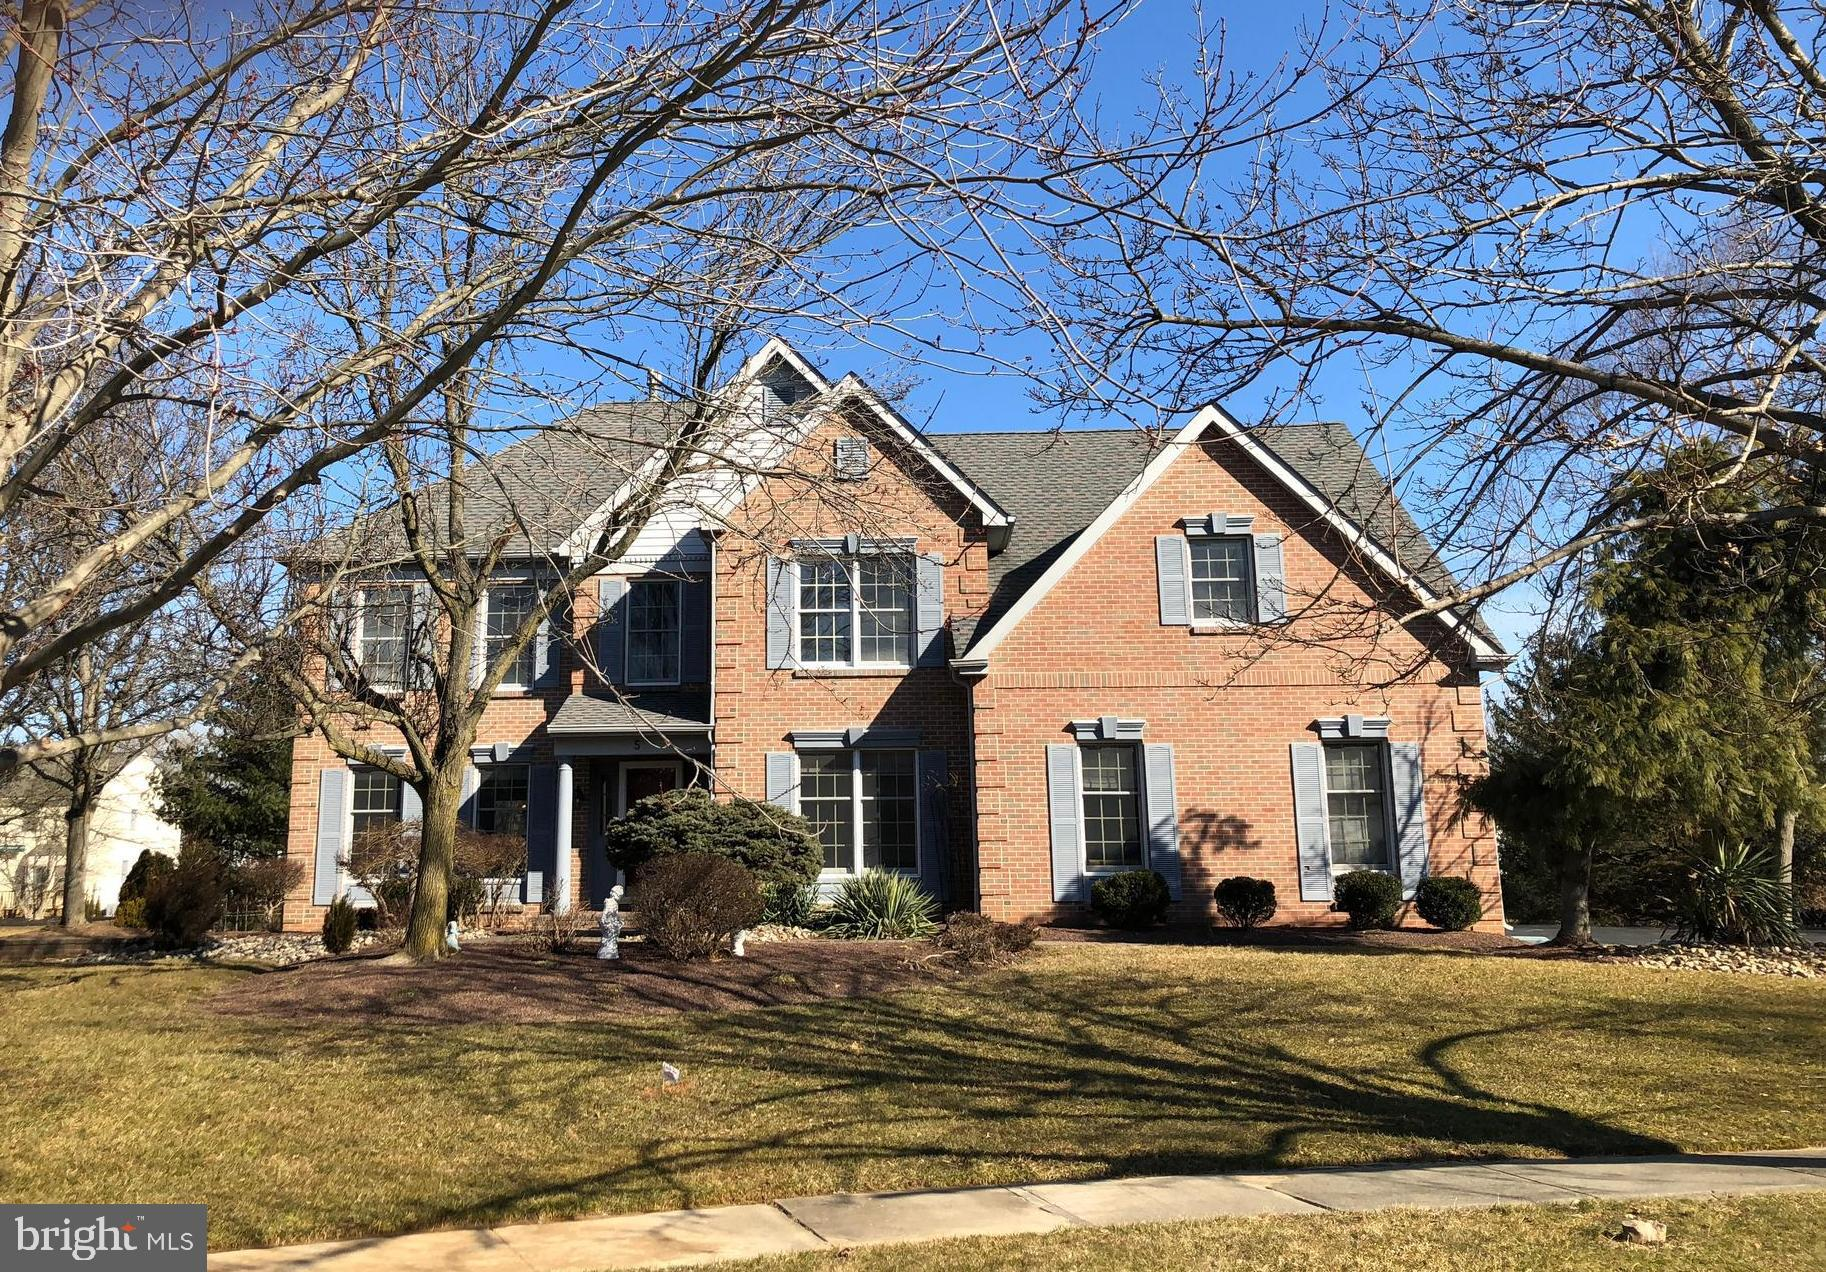 5 MERIDAN COURT, WEST WINDSOR, NJ 08550